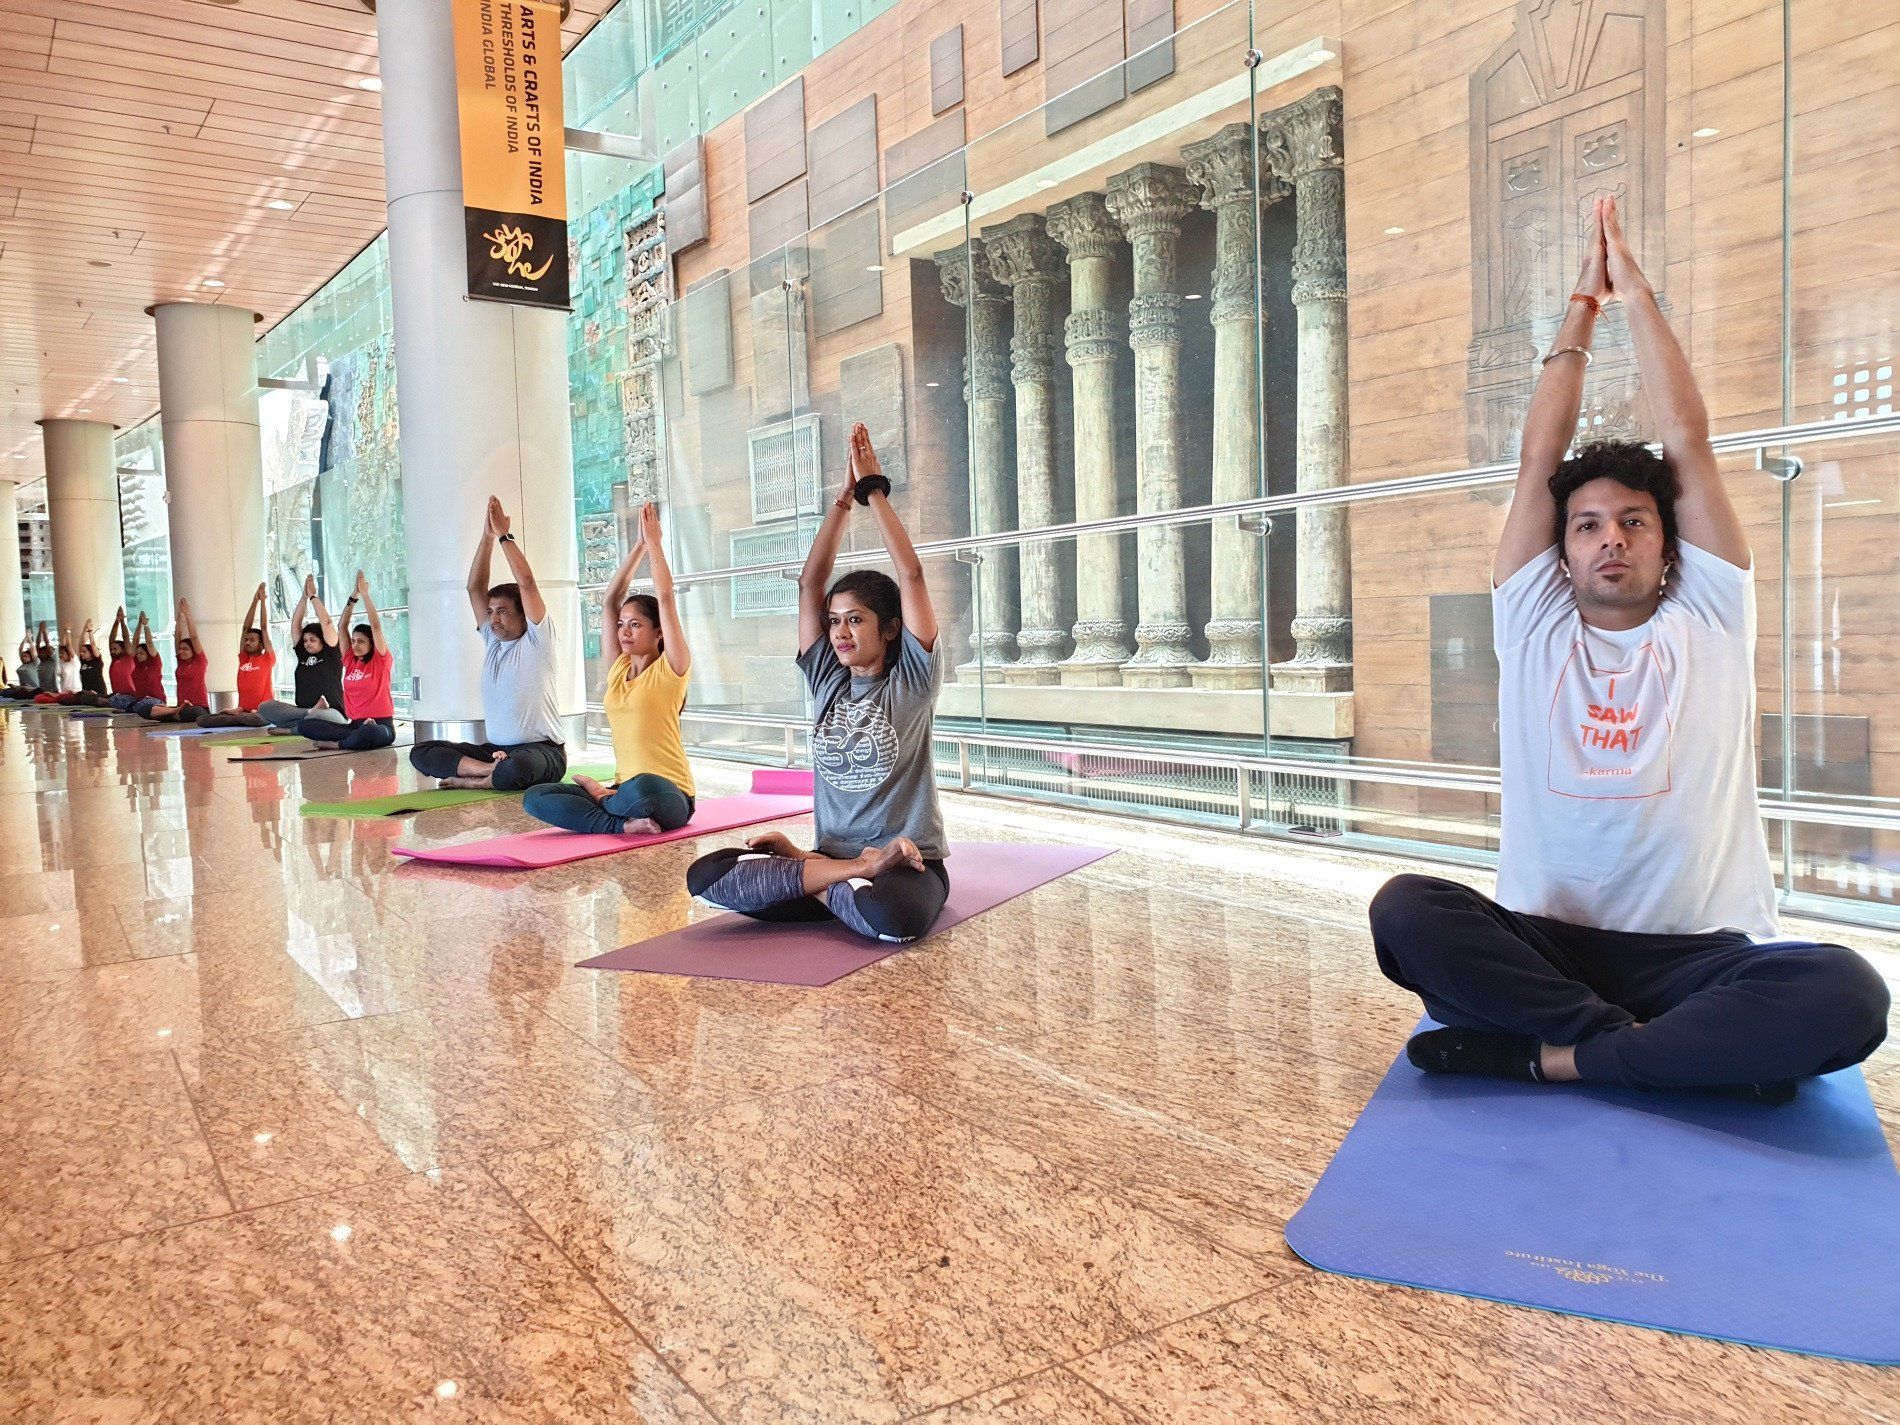 Mumbai International Airport Revives Indian Culture And Art Through Yoga By The Art Wall